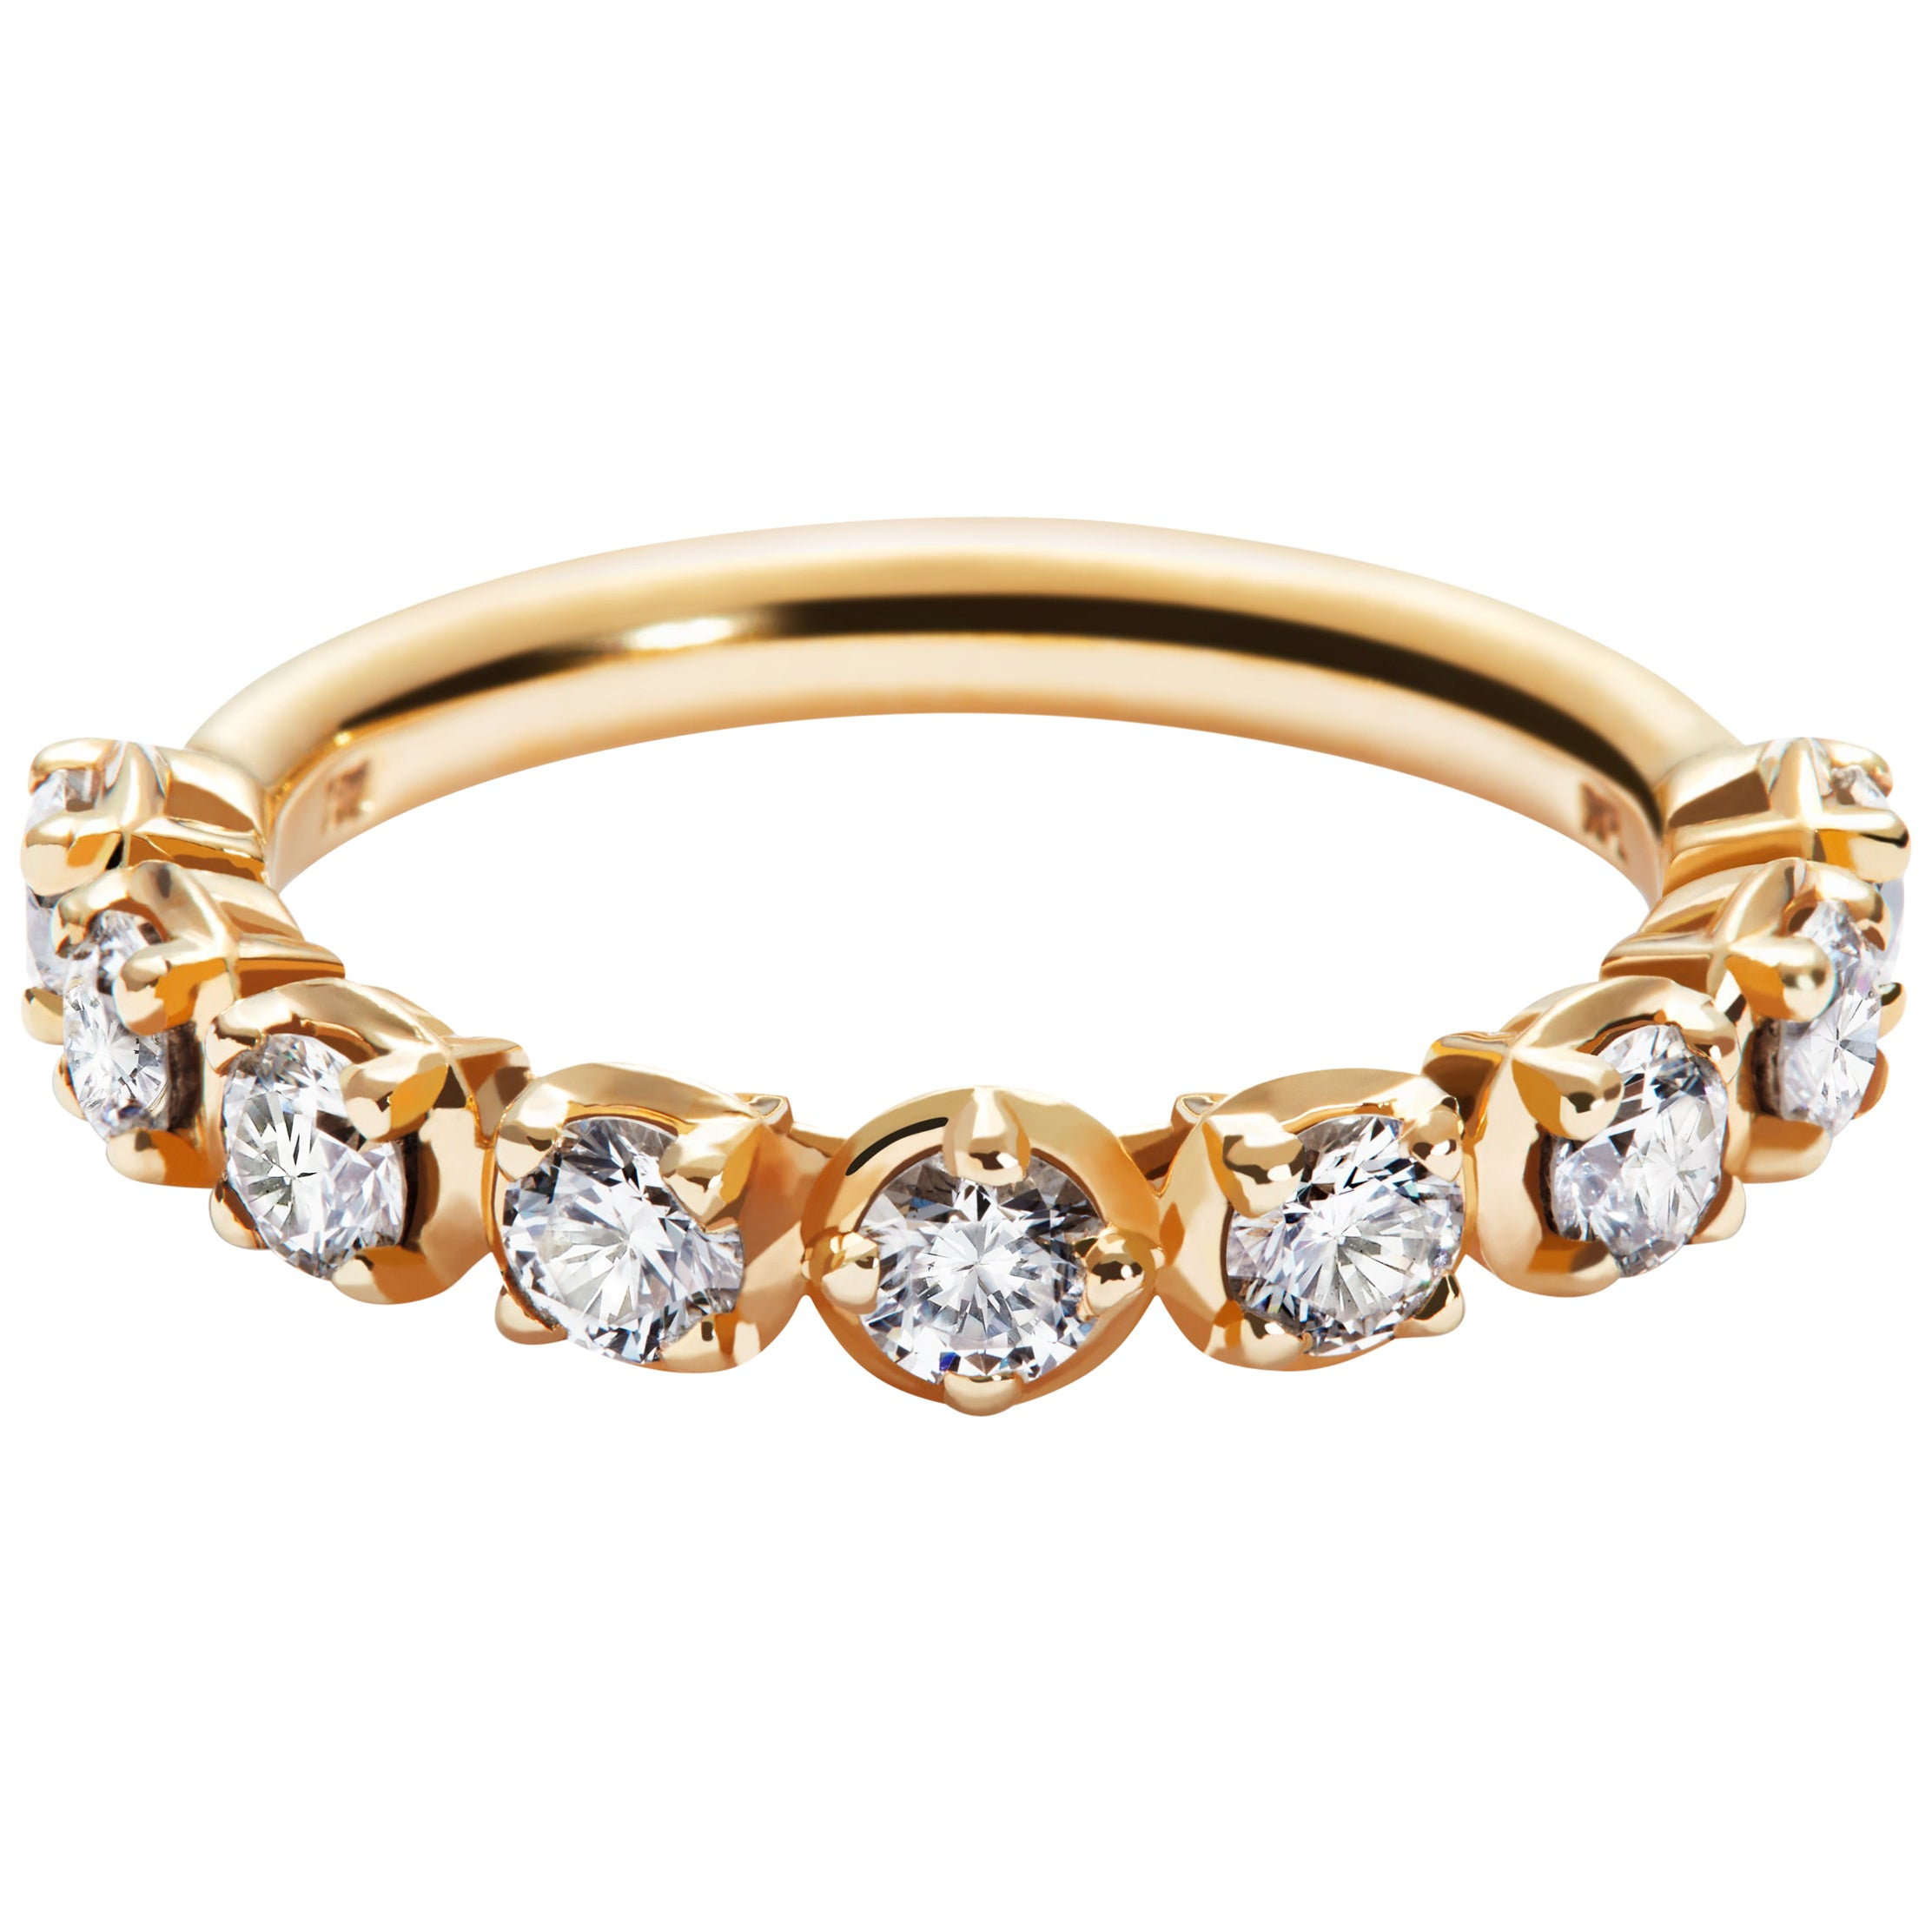 Band Ring with Traceable Diamond in 18 Karat Yellow Gold by Rocks for Life